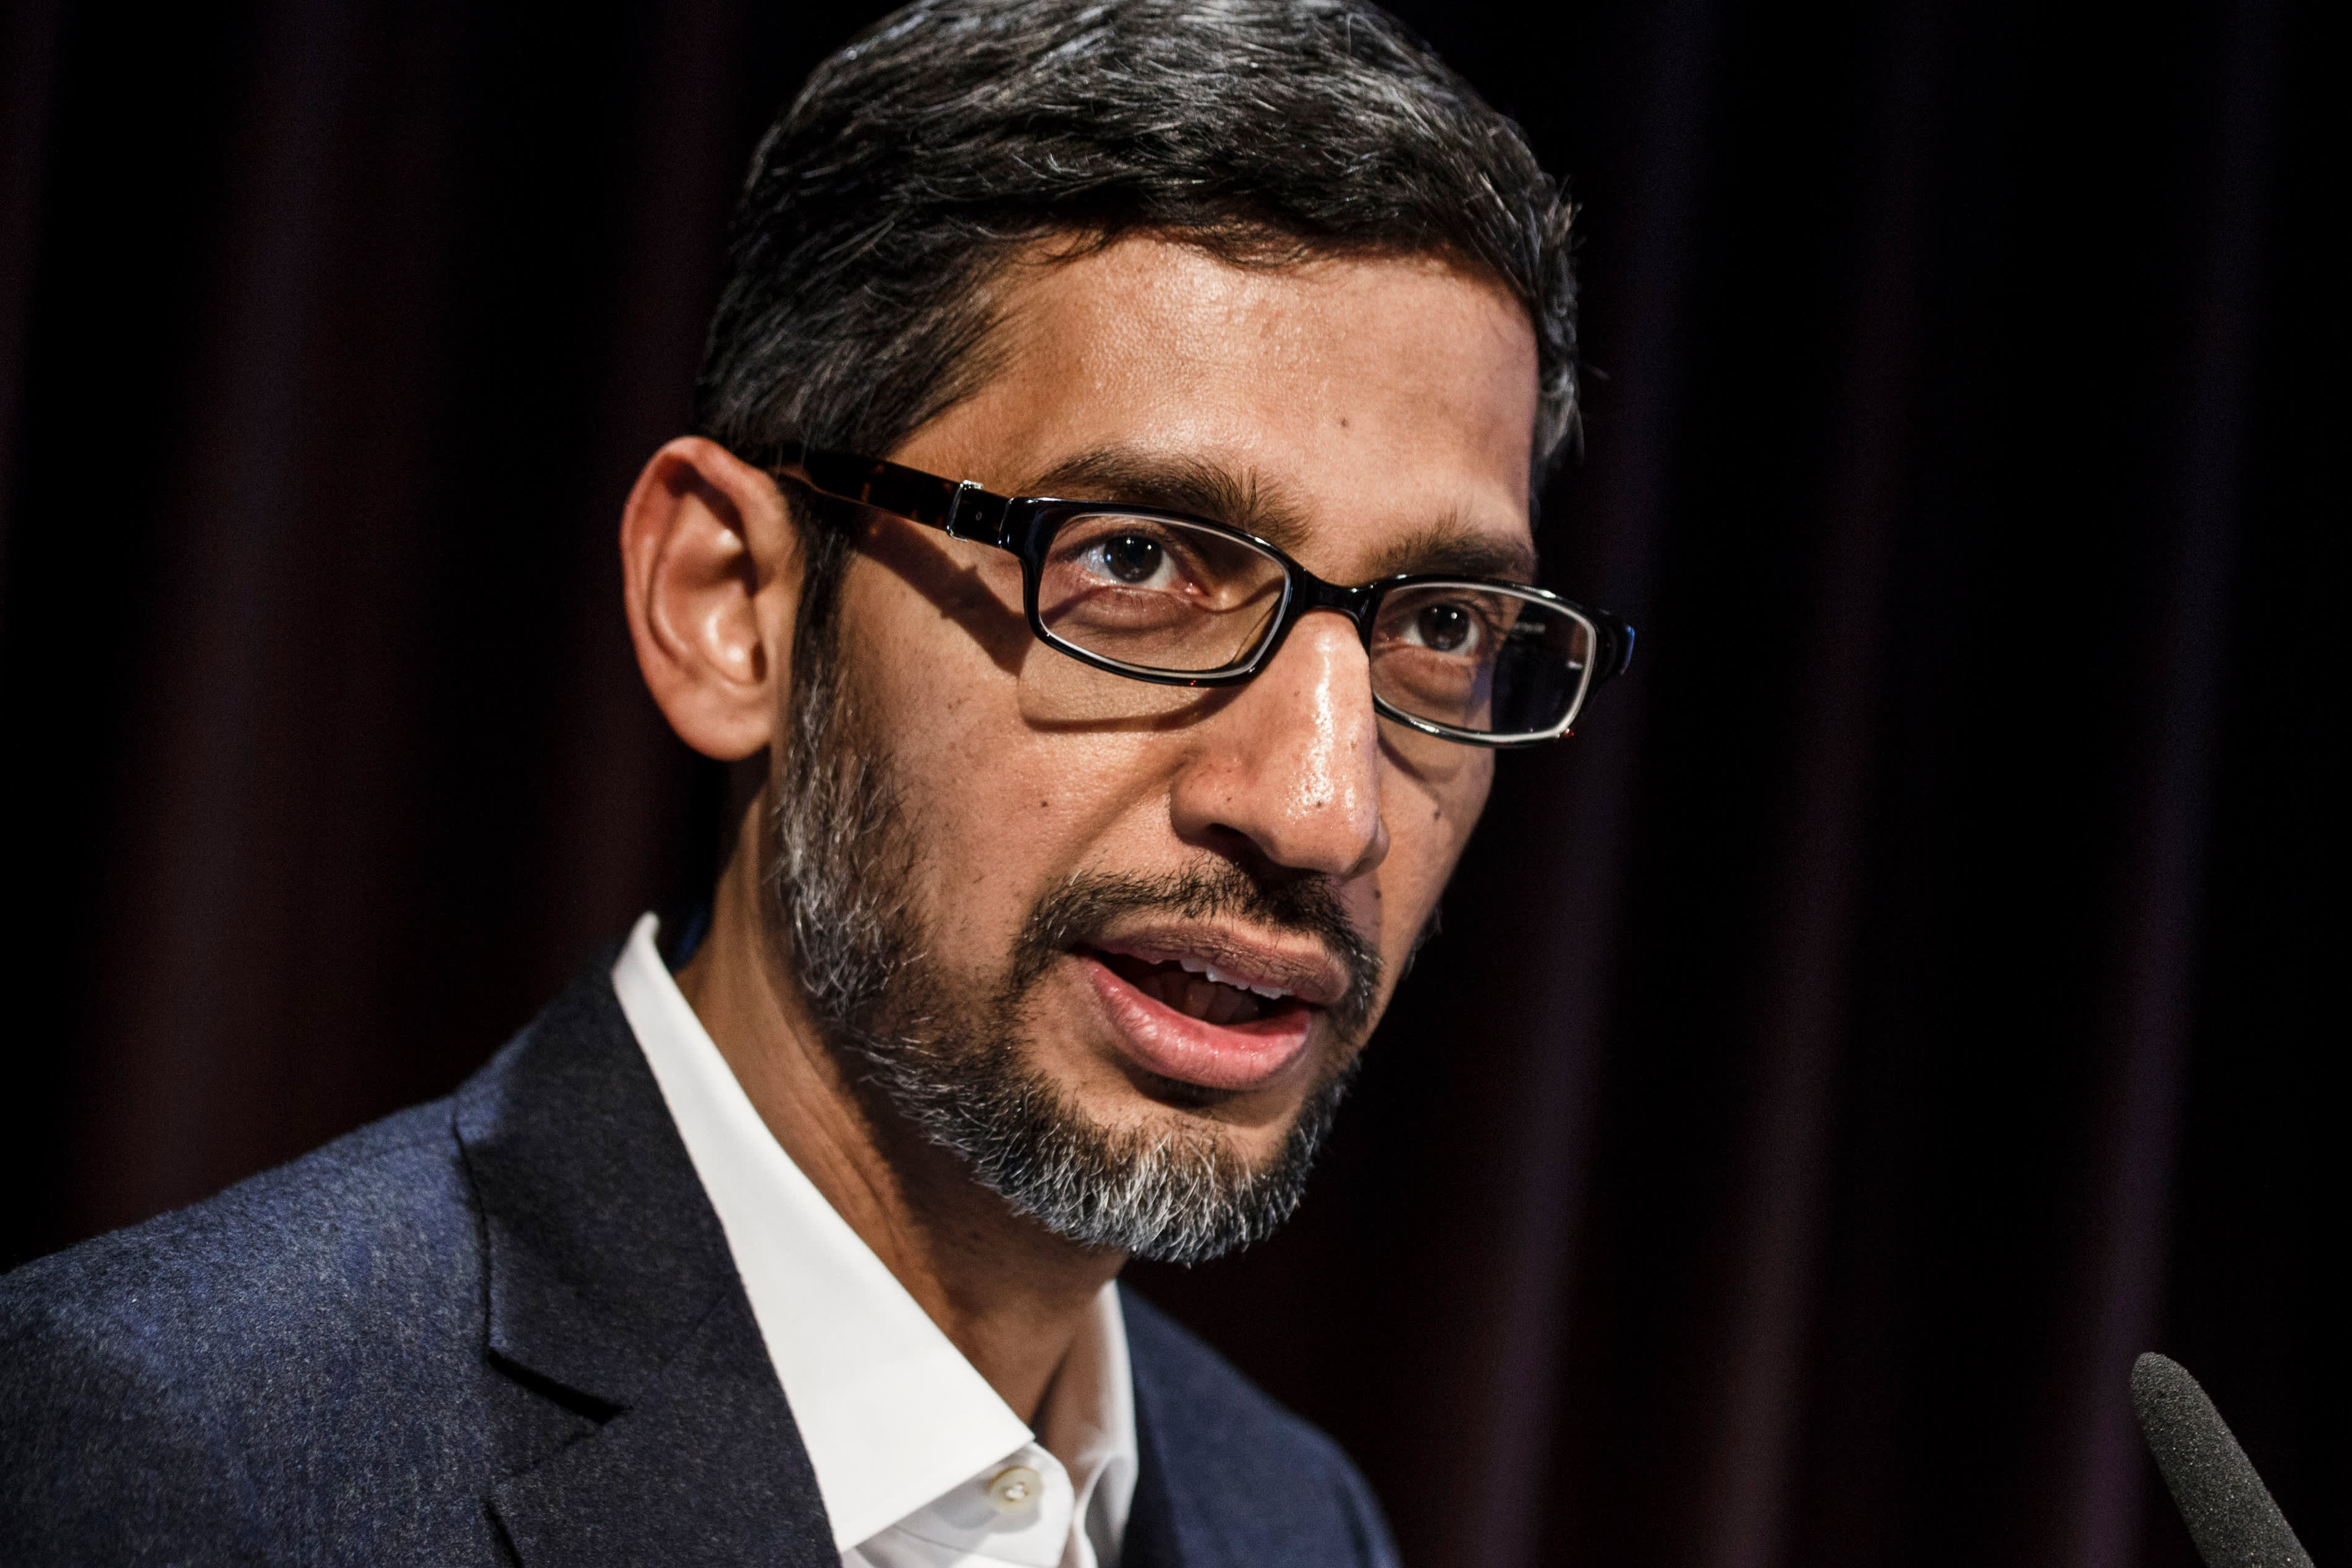 More than 30 states are looking at a Google antitrust probe